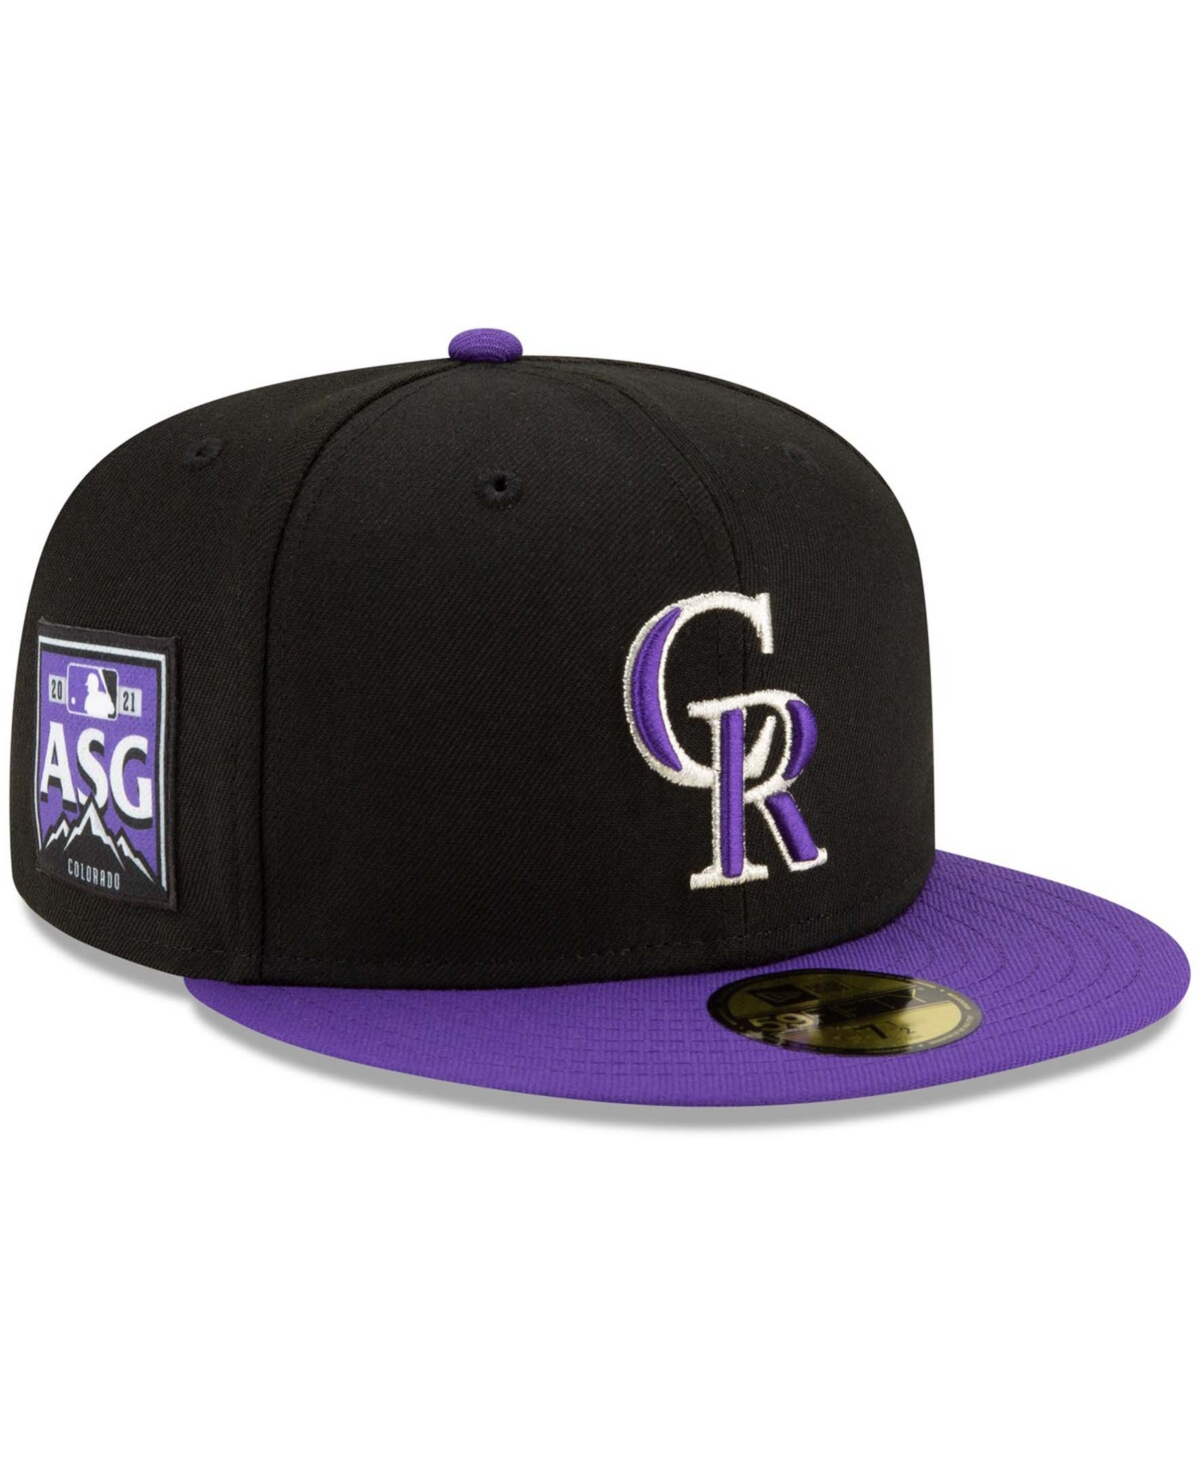 Men's Black, Purple Colorado Rockies 2021 Mlb All-Star Game Authentic Collection On-Field 59FIFTY Fitted Hat